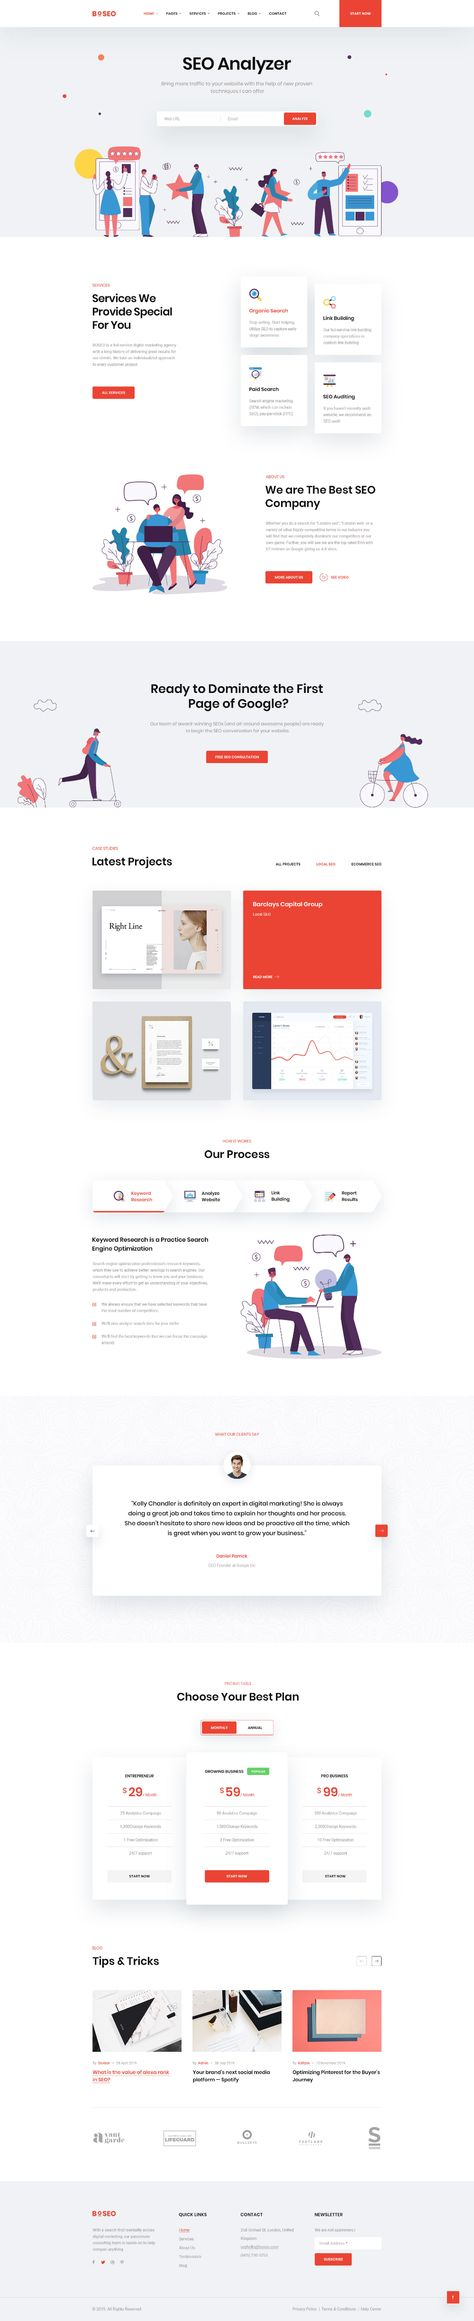 Boseo - SEO & Digital Marketing PSD Template